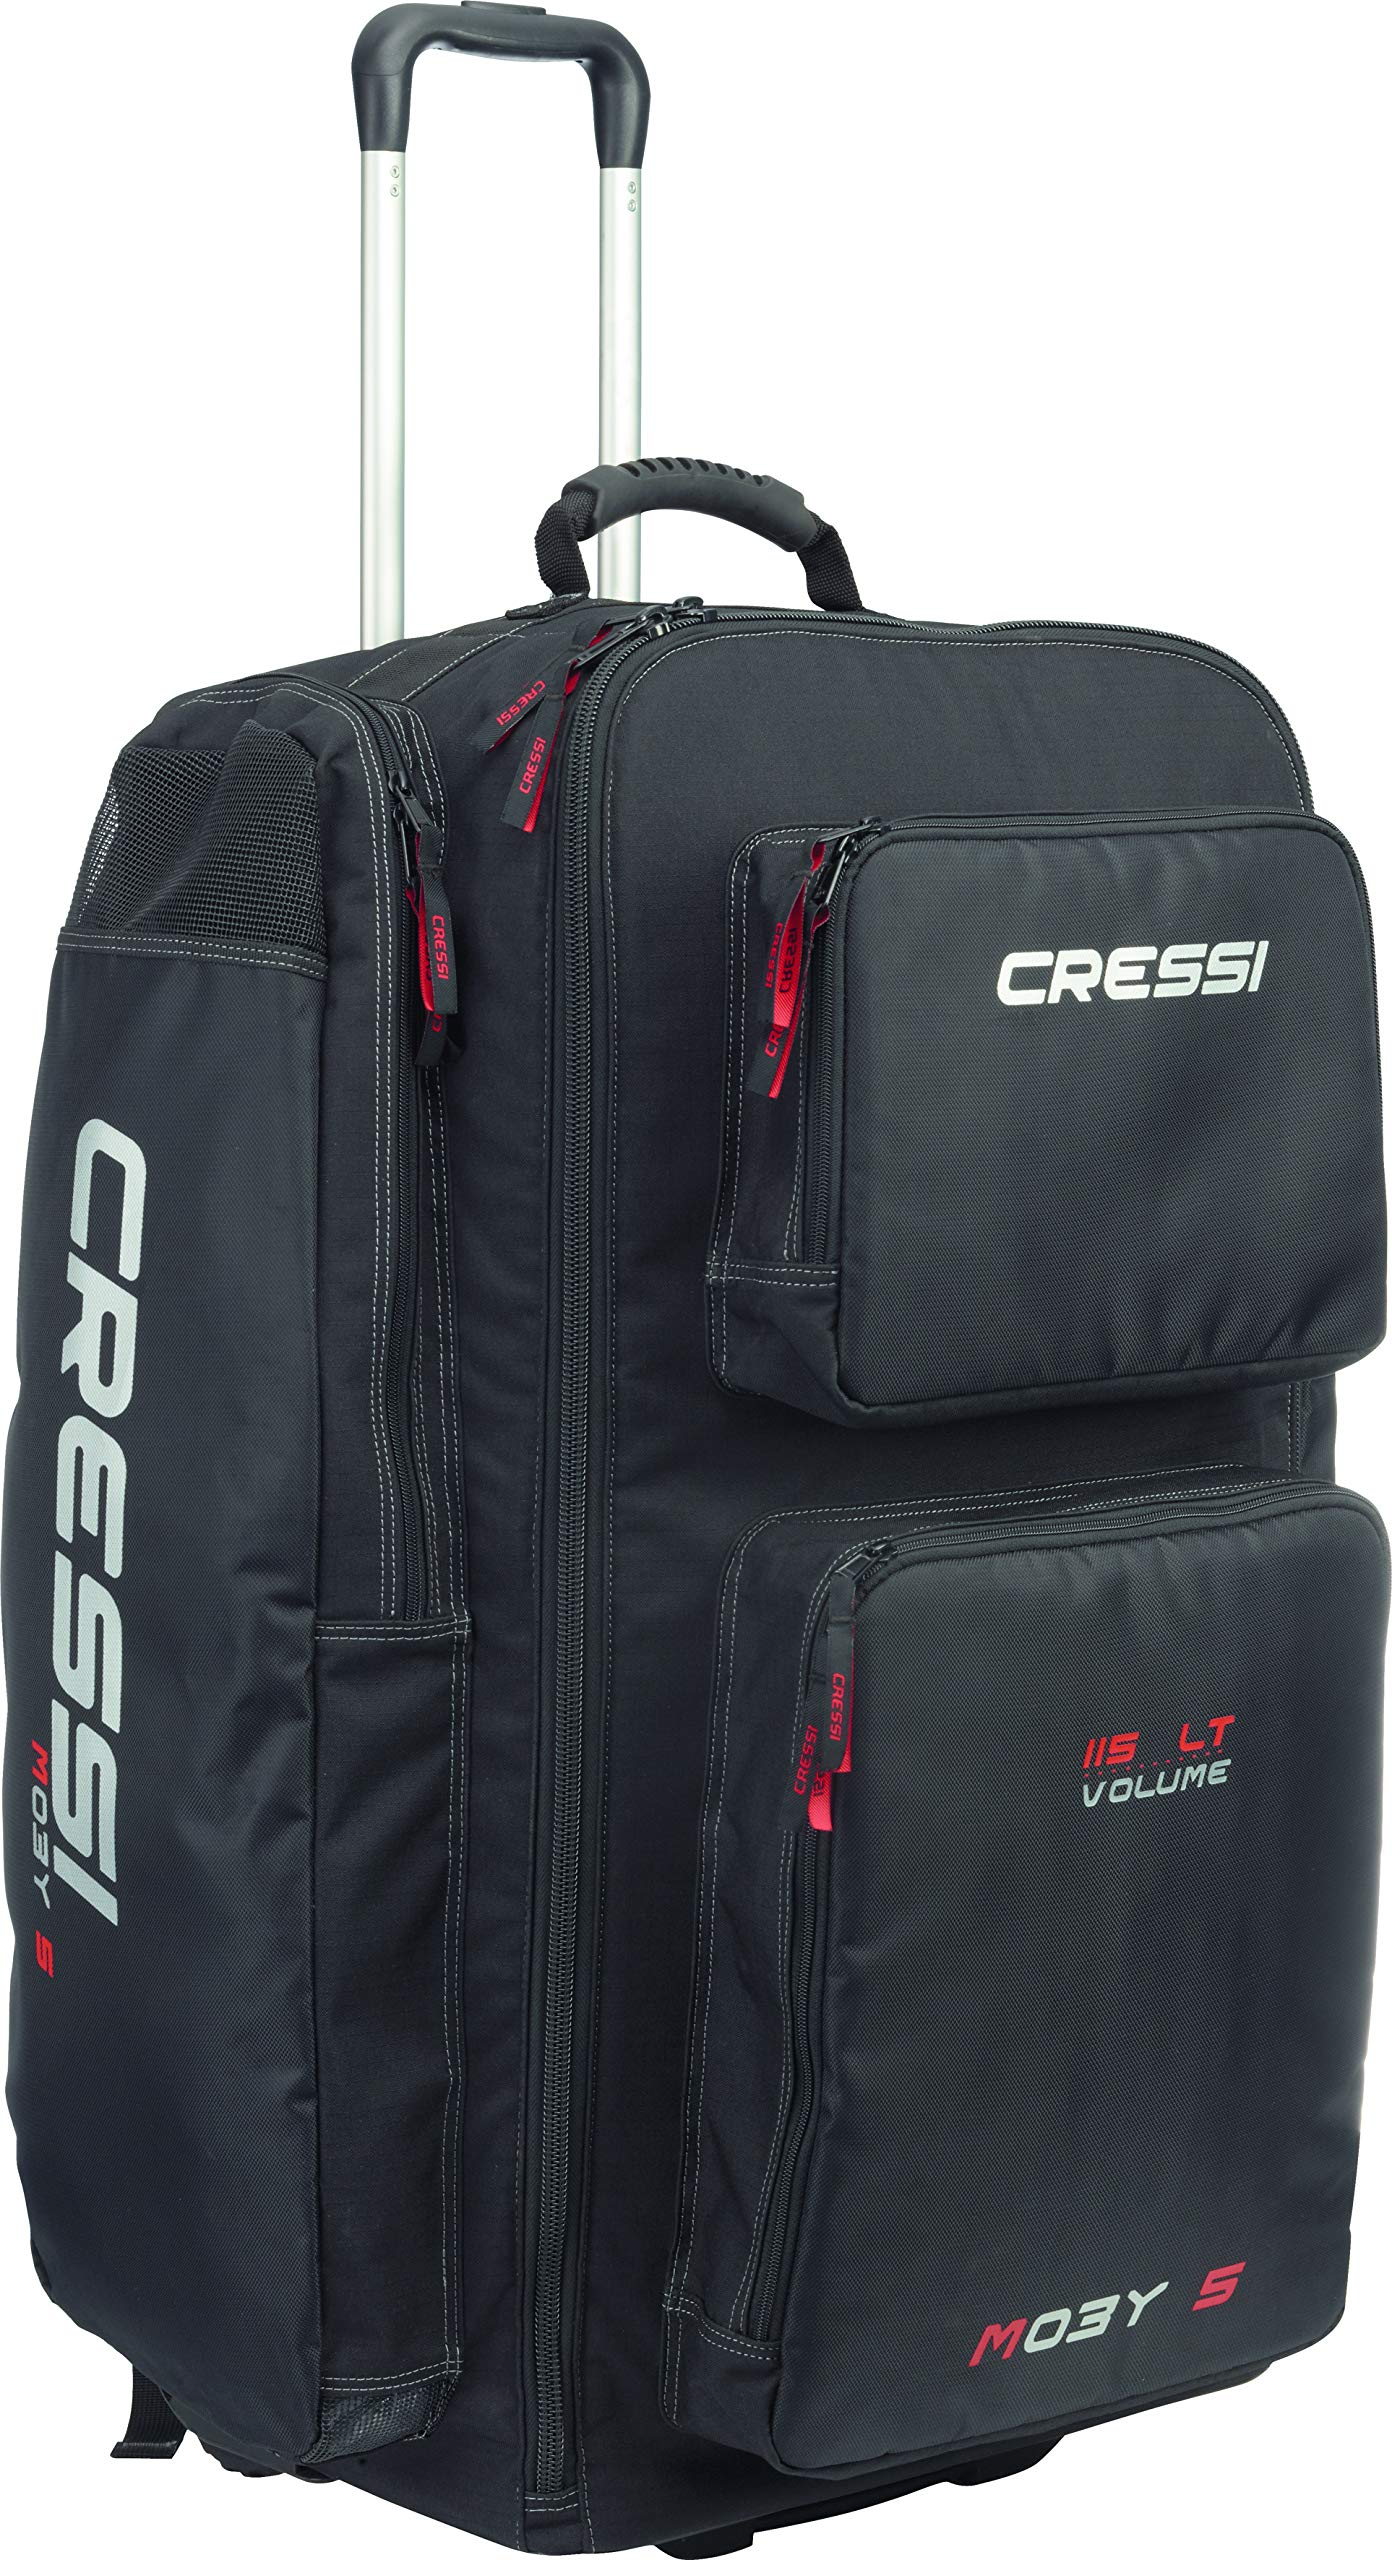 Cressi Strong Large Capacity Trolley Bag 115L with Backpack Straps | Moby 5 designed in Italy by Cressi